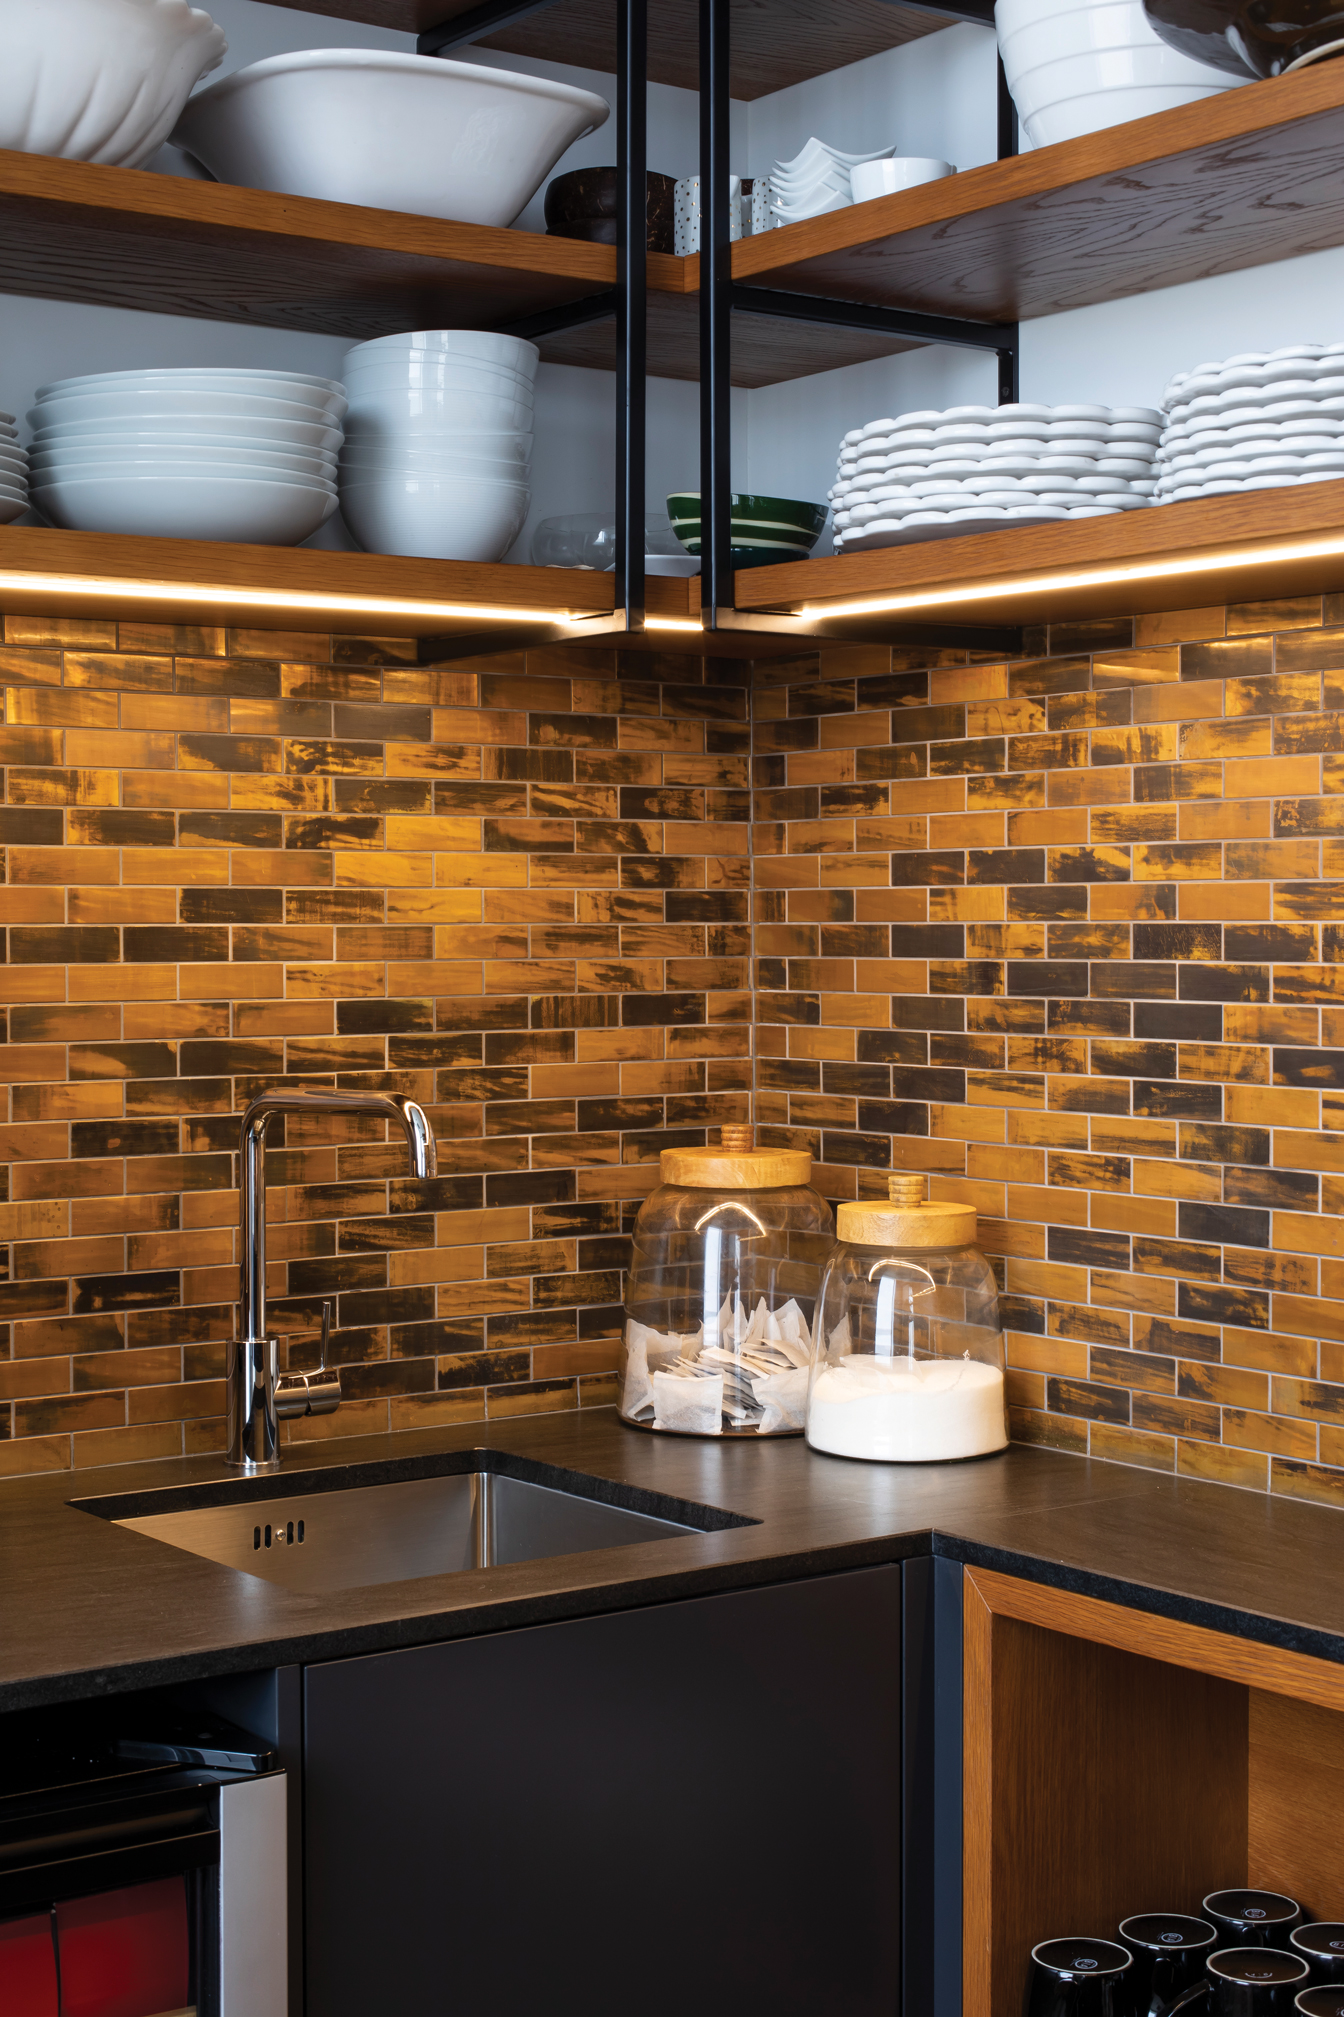 PANTRY: Copper Brick Bond mosaic tiles give a modern rustic look for this sleek pantry.